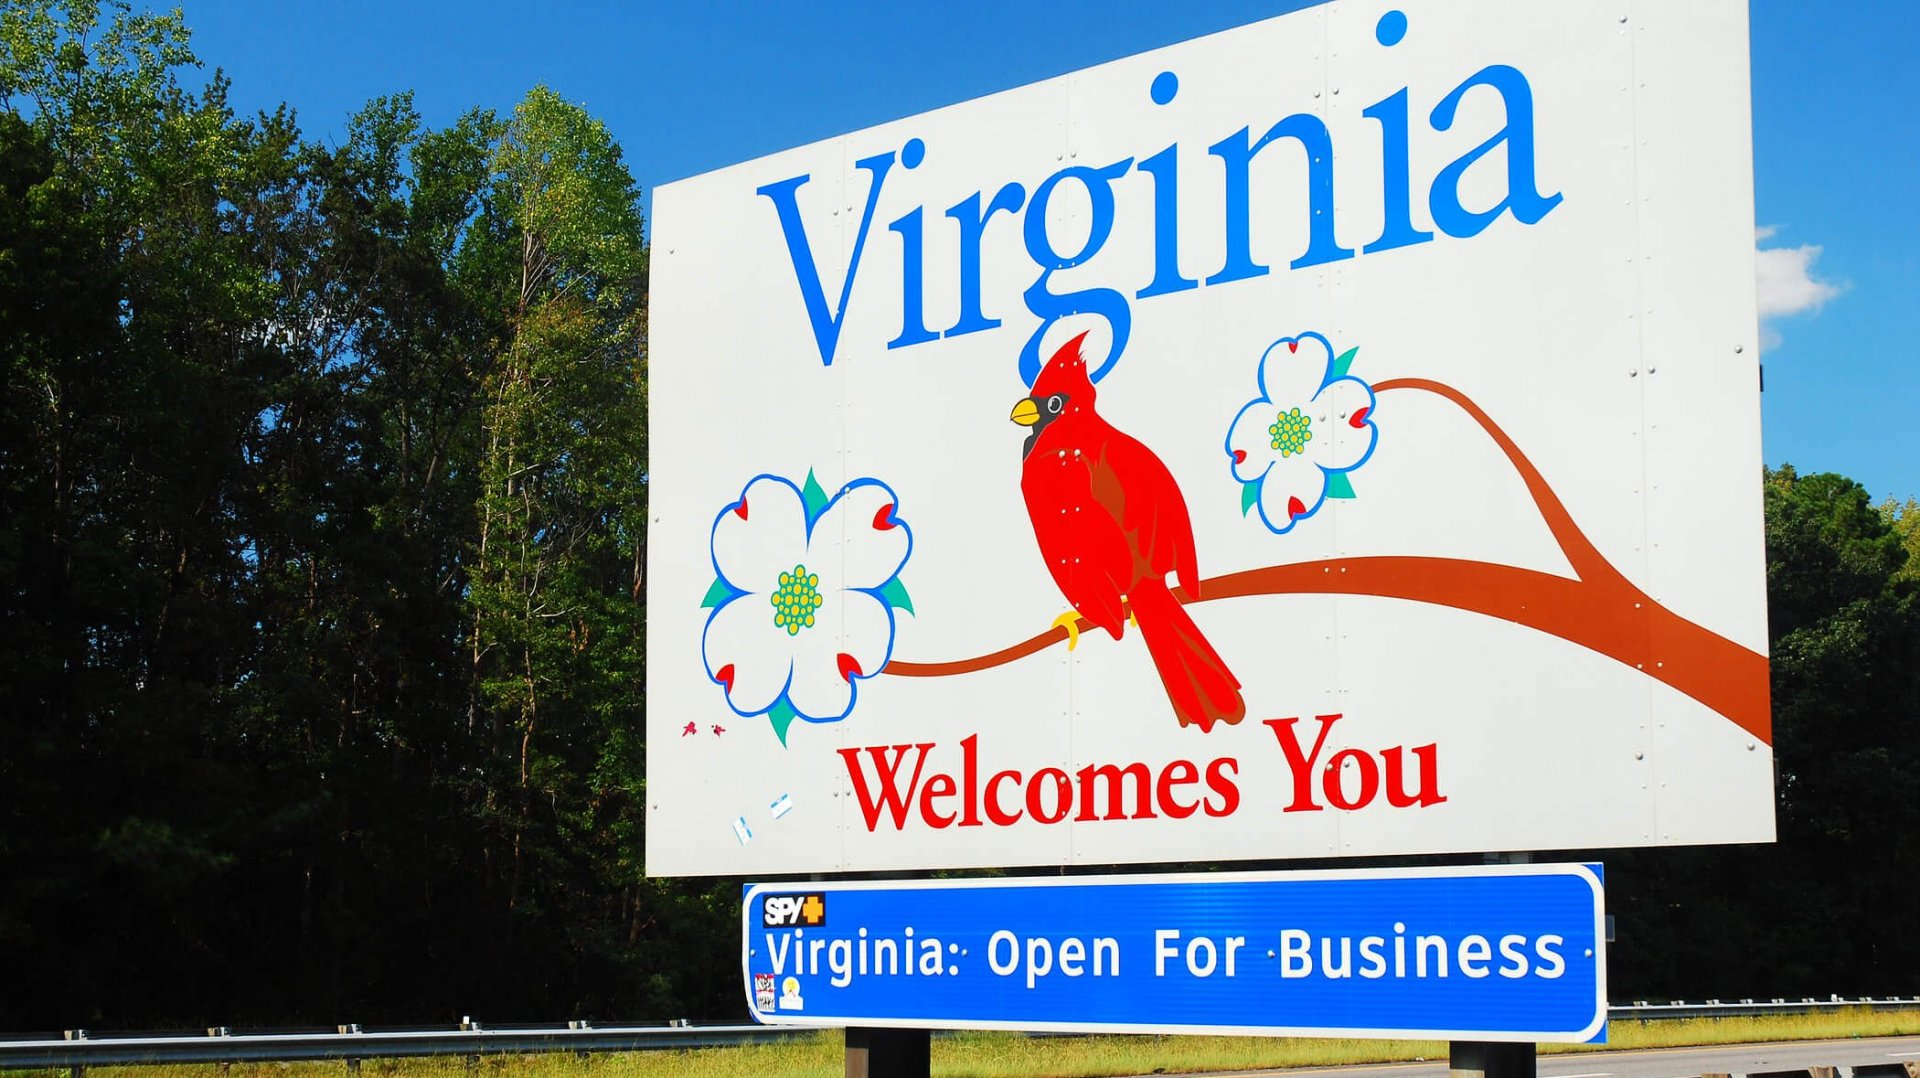 The welcome to Virginia sign